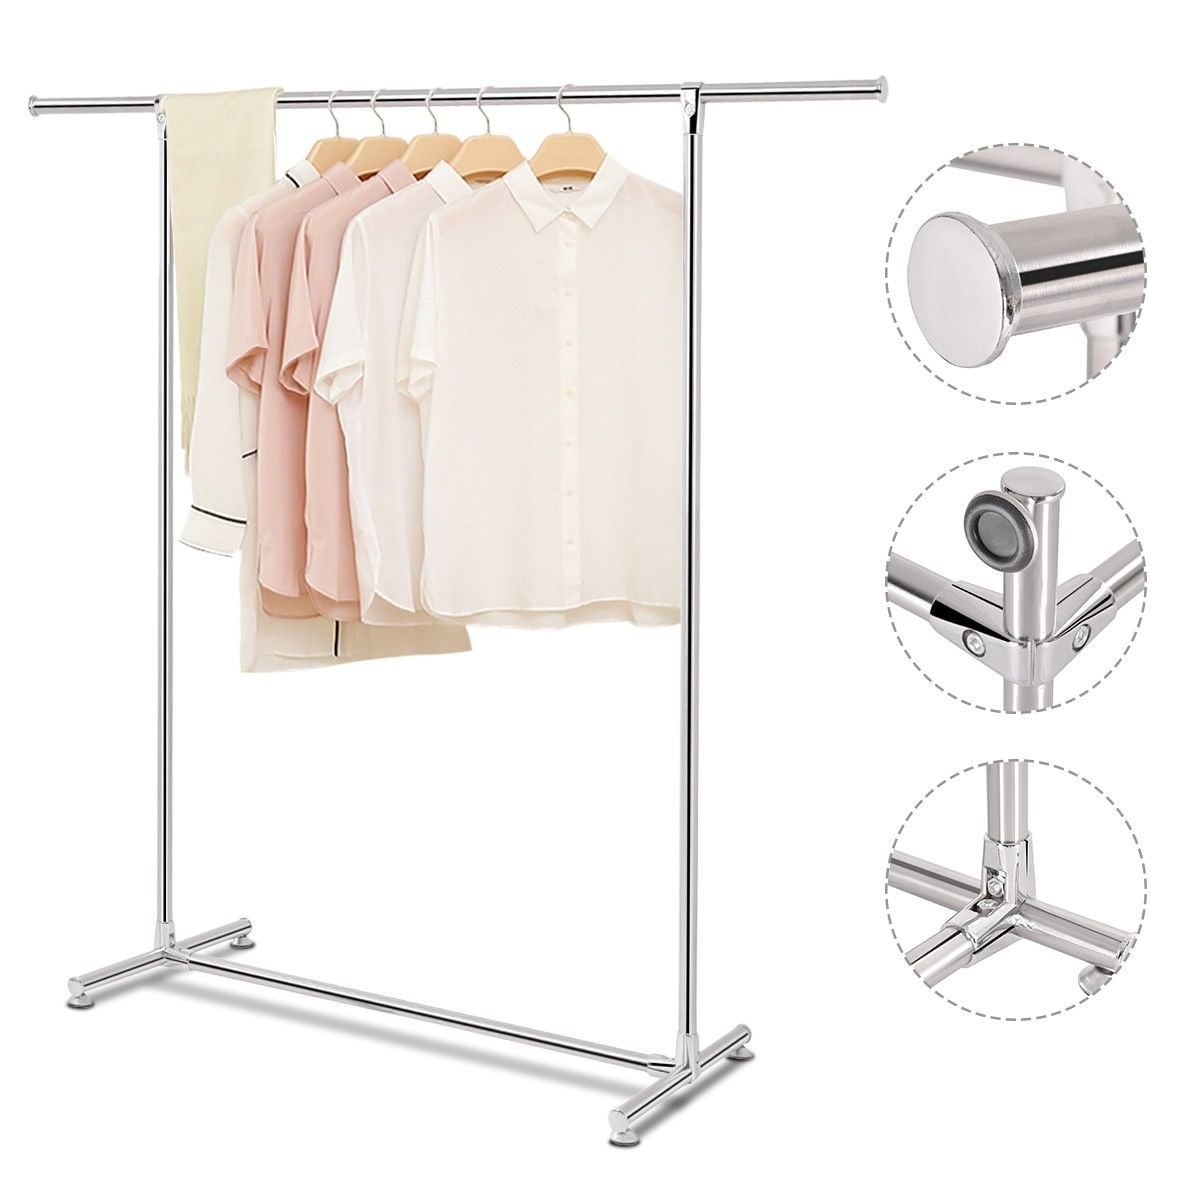 Shop costway heavy duty stainless steel garment rack clothes hanging drying display rail sliver free shipping on orders over 45 overstock com